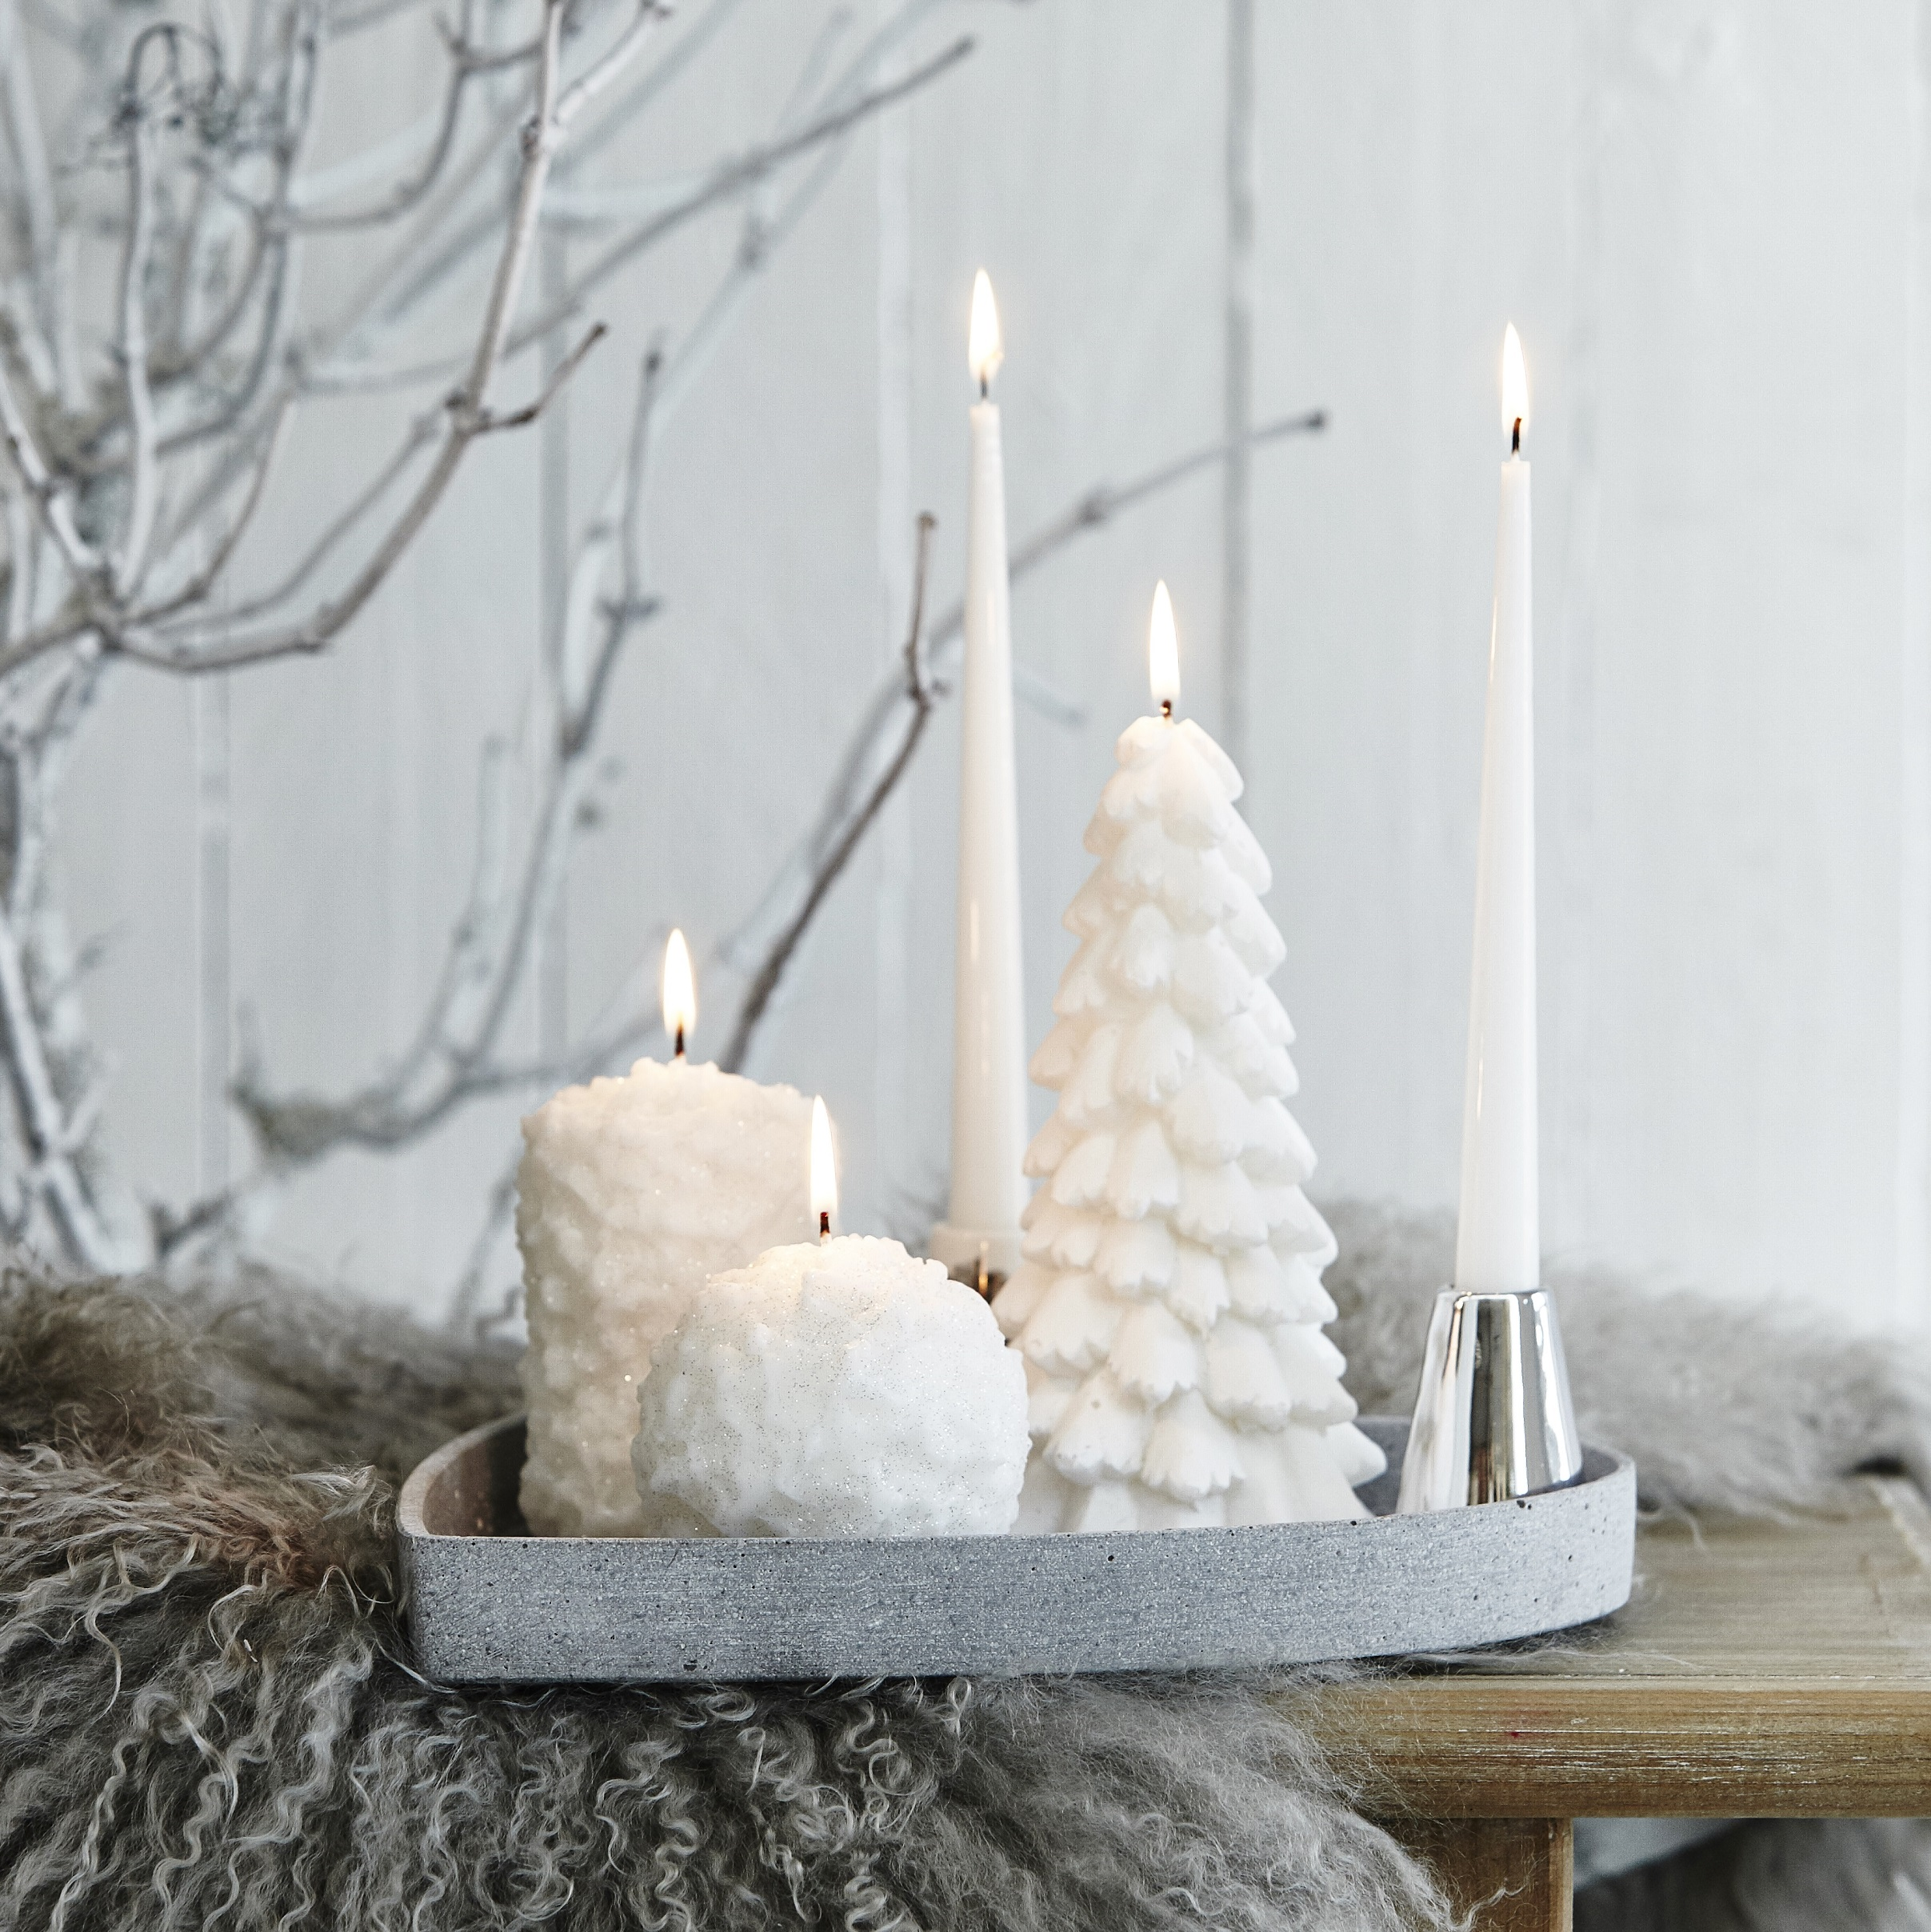 Christmas Tree Decorative Candle by Lene Bjerre, Festive ...